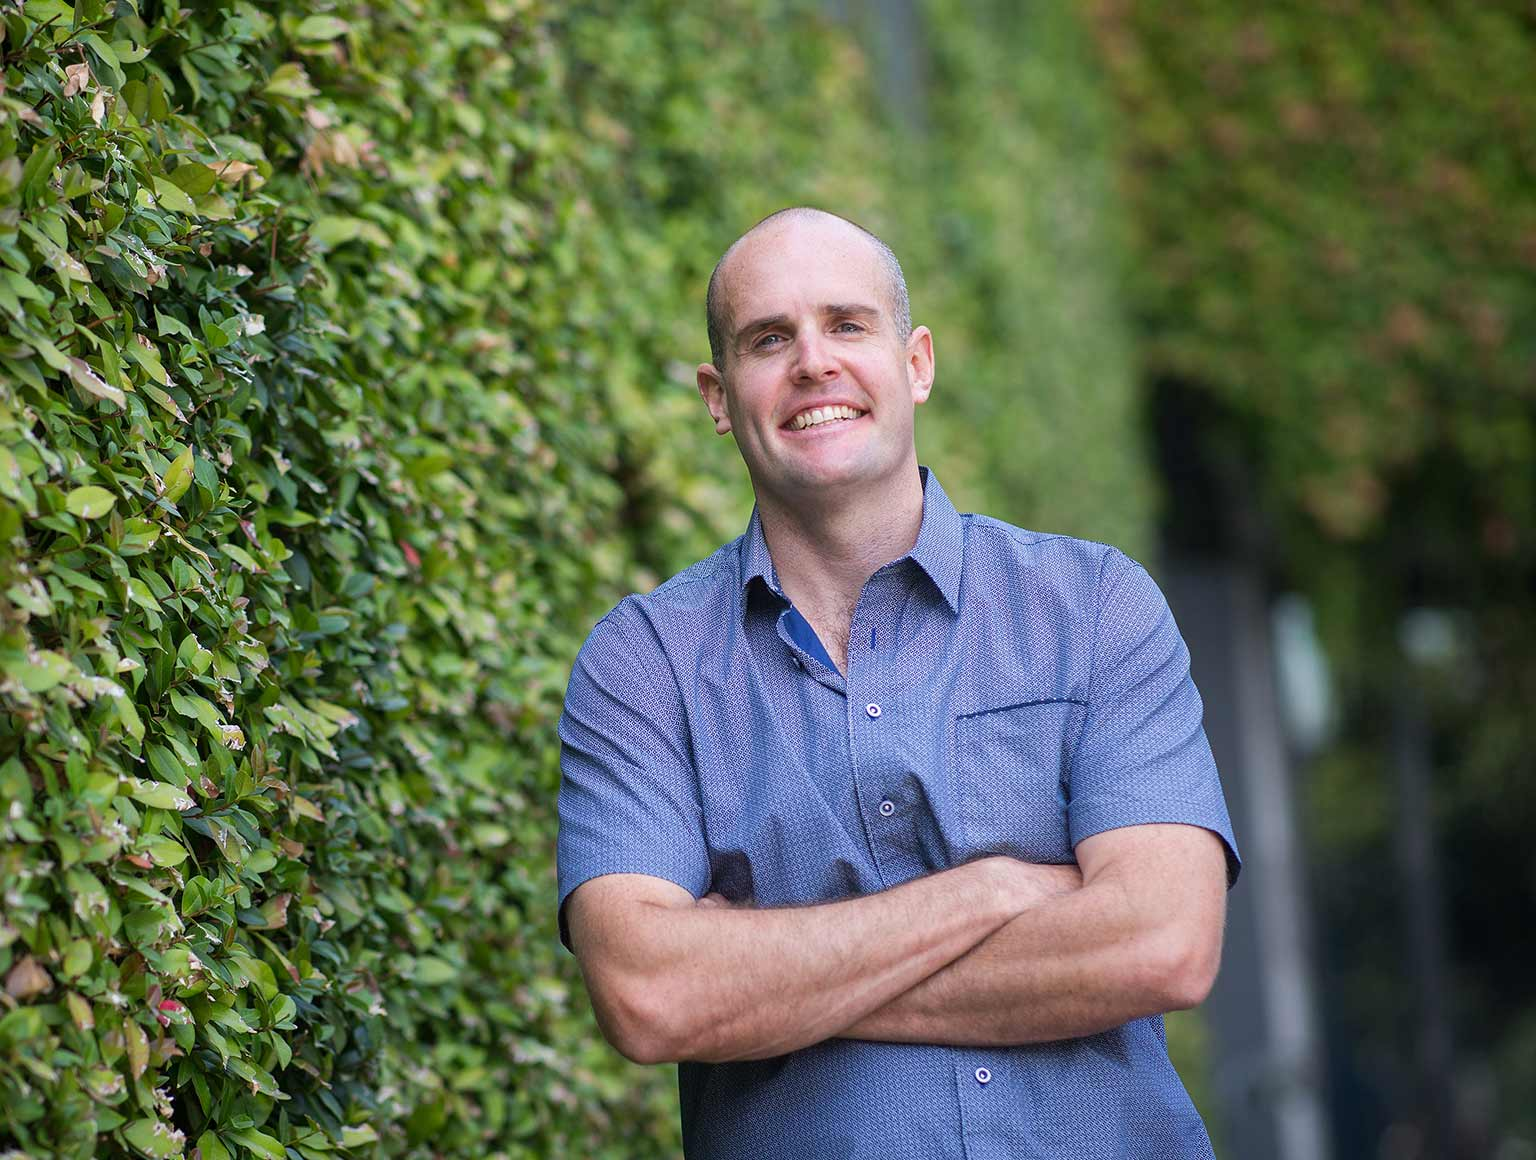 Middle-aged man in a blue shirt stands with his arms crossed beside a large hedge and smiles broadly at the camera.